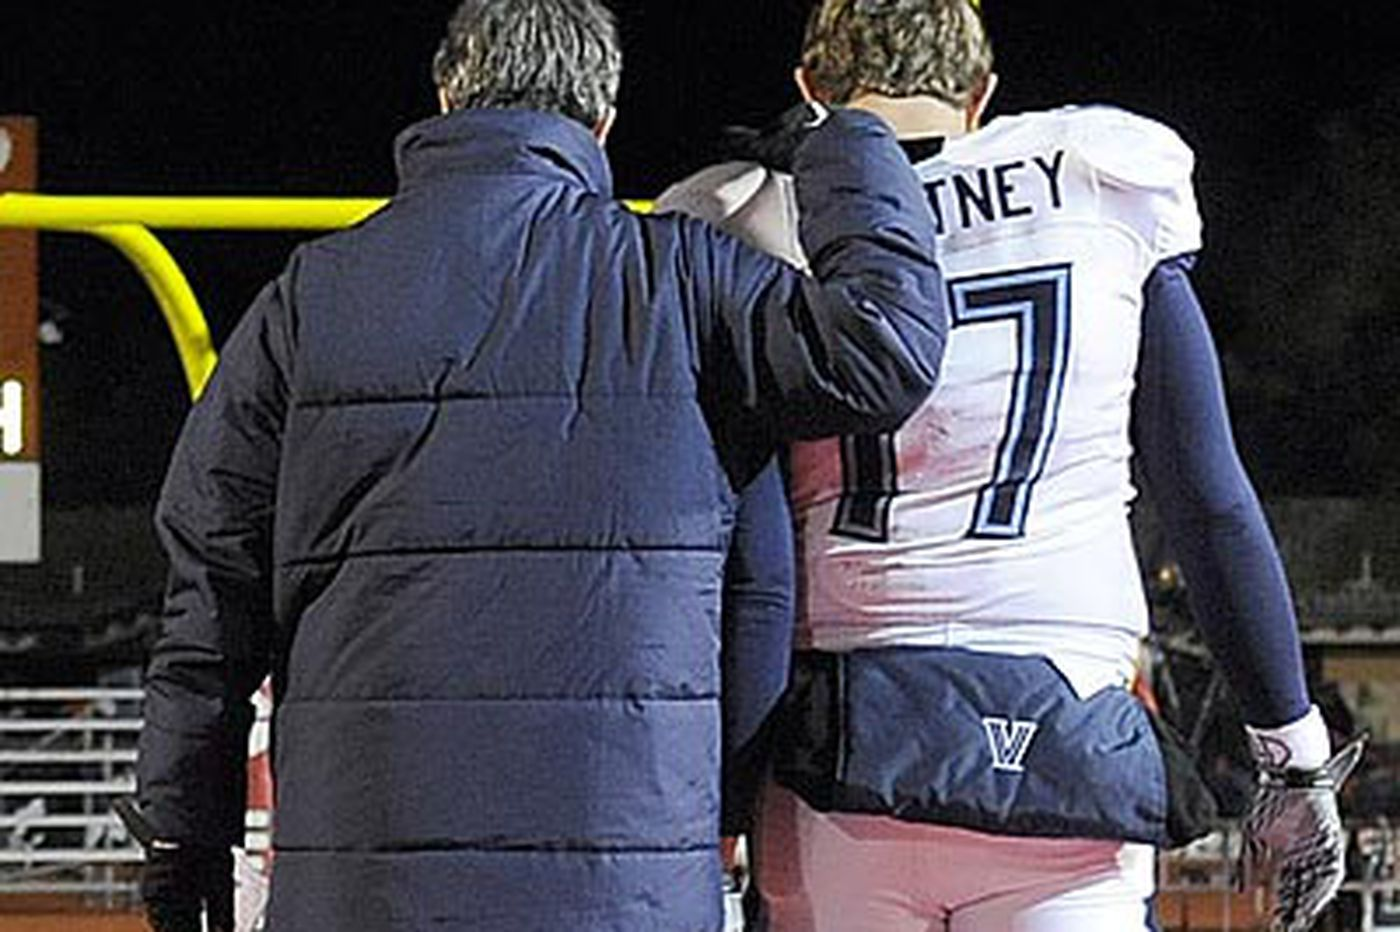 Talley says good-bye to a special team after Villanova's FCS semifinal loss